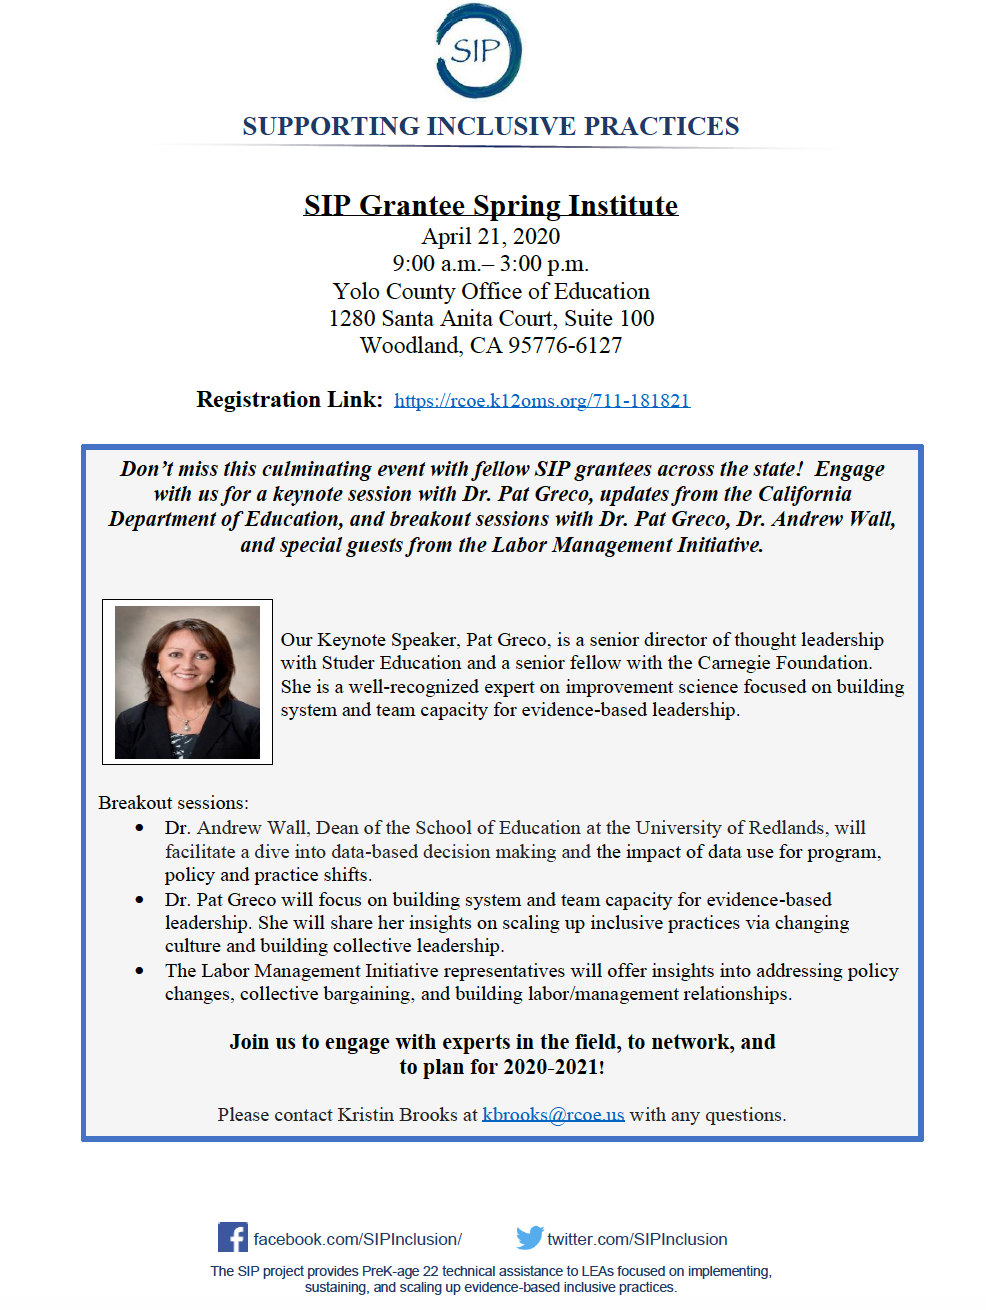 VIRTUAL EVENT: SIP Grantee Spring Institute